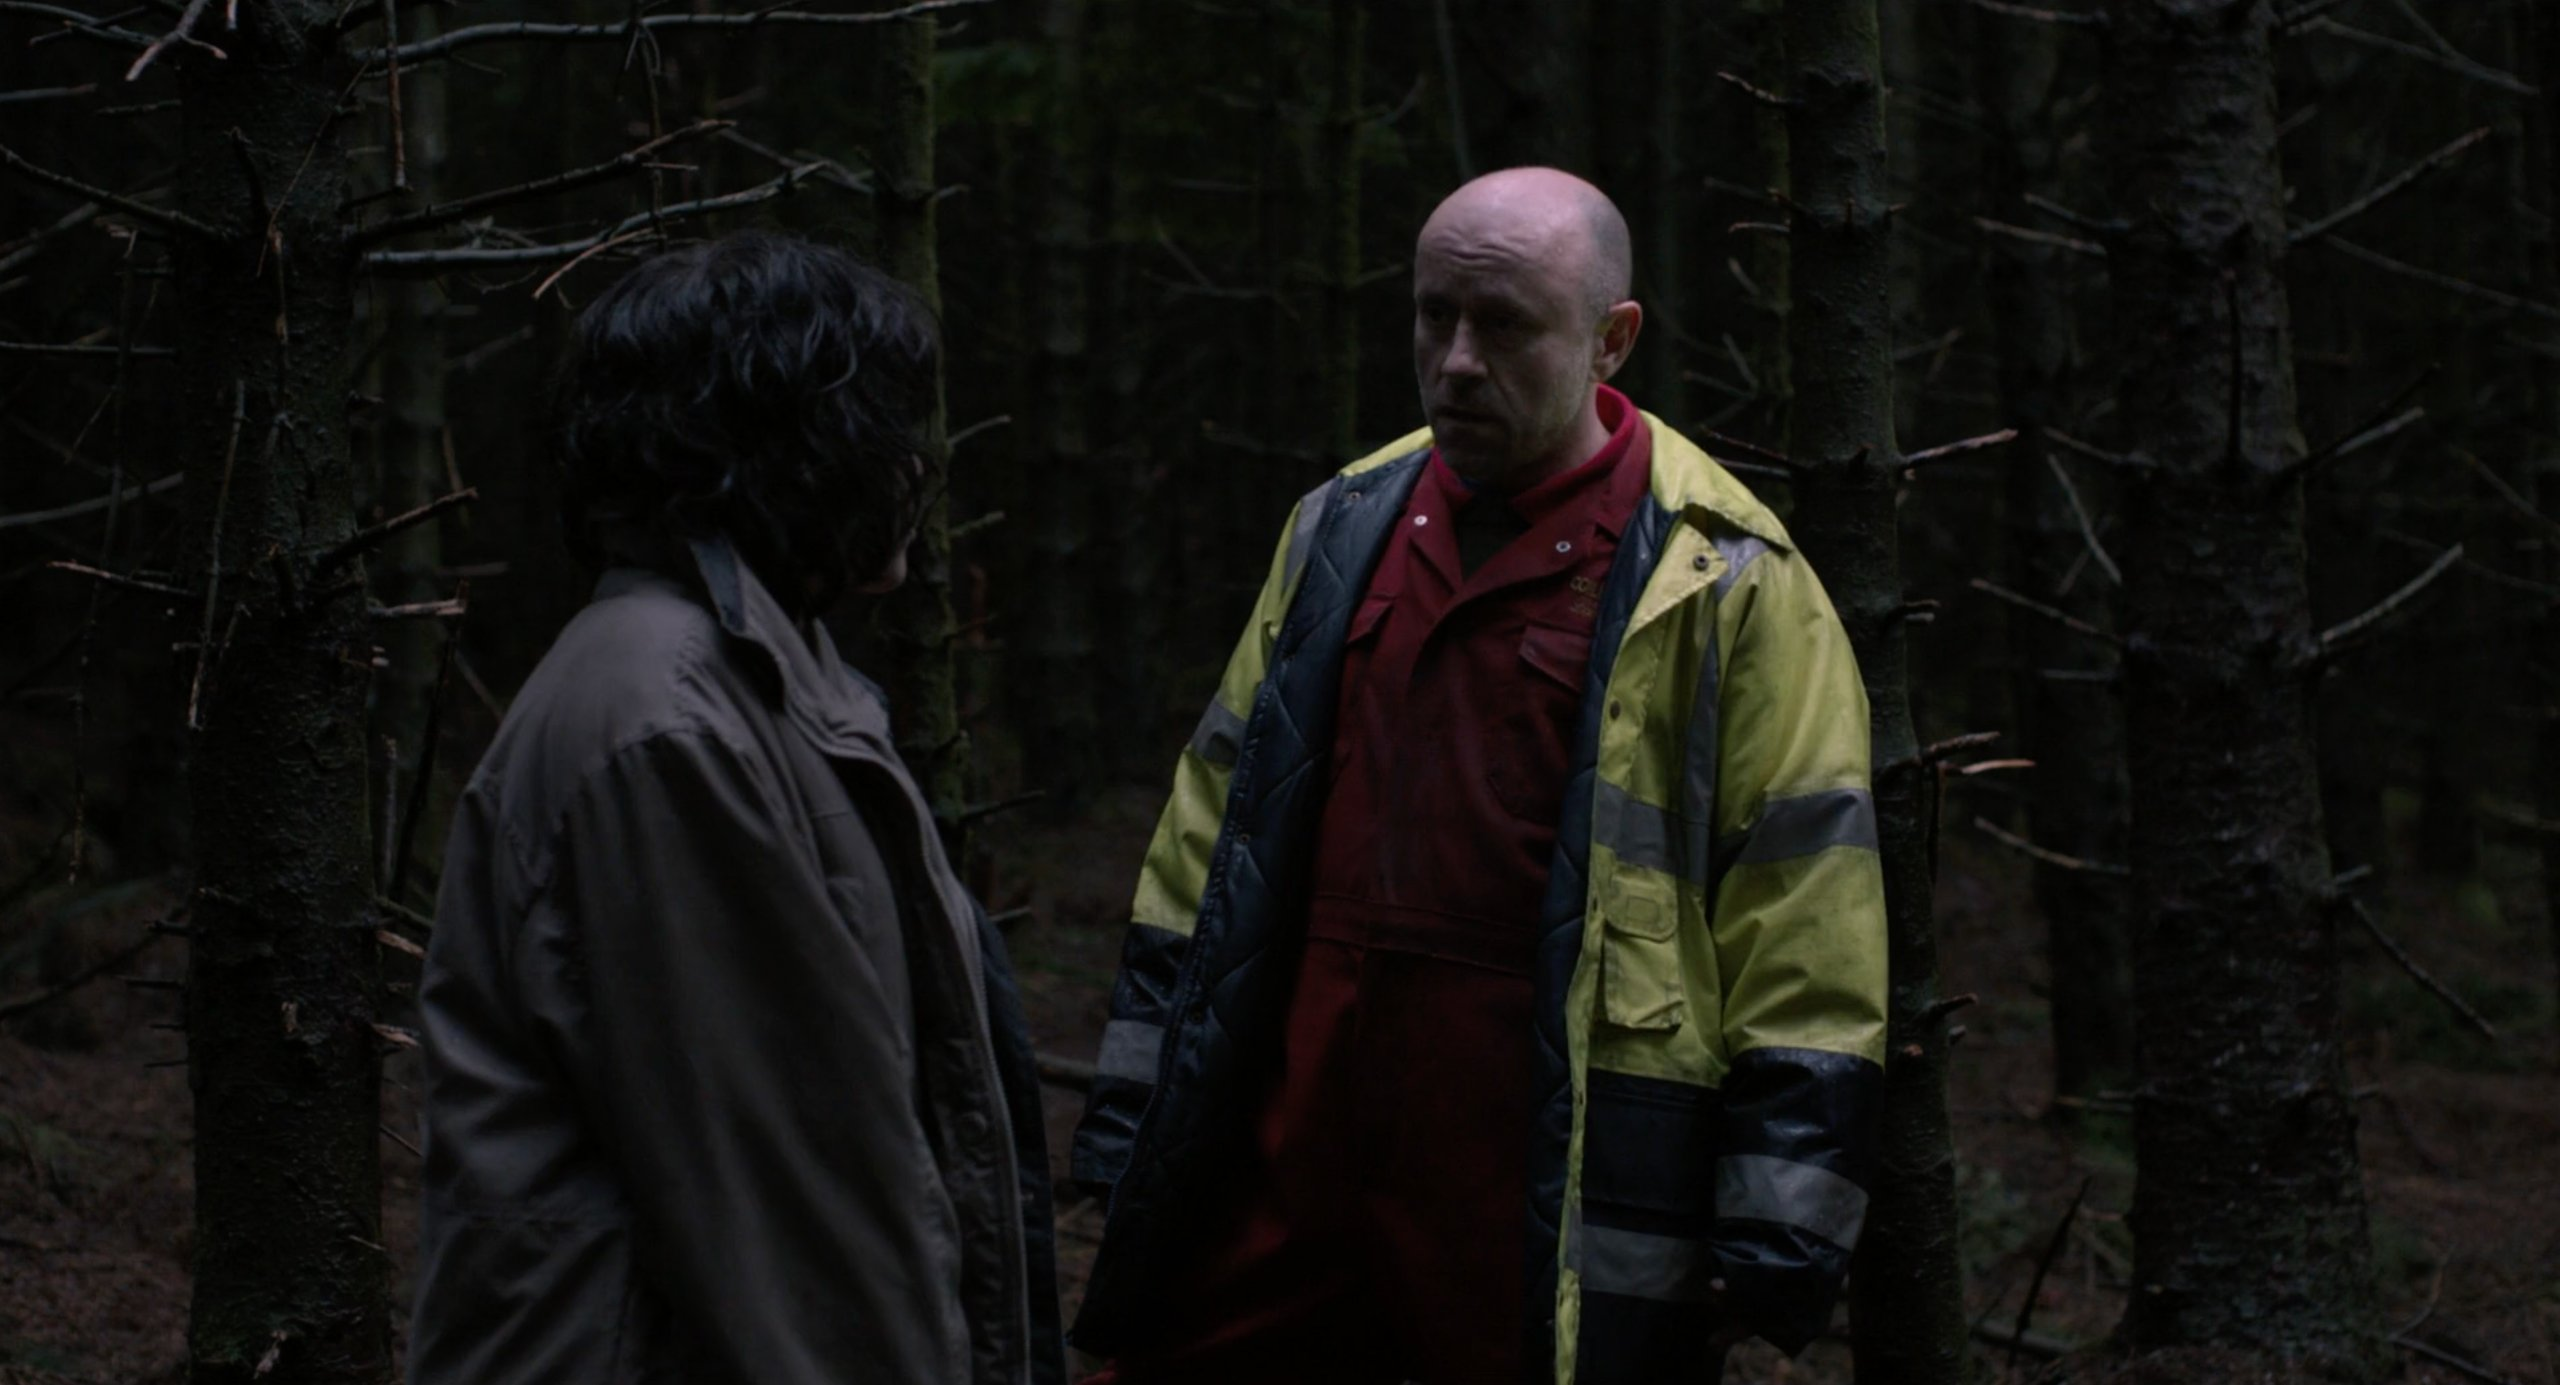 Scarlett Johansson talks to the logger in the forest in Under the Skin